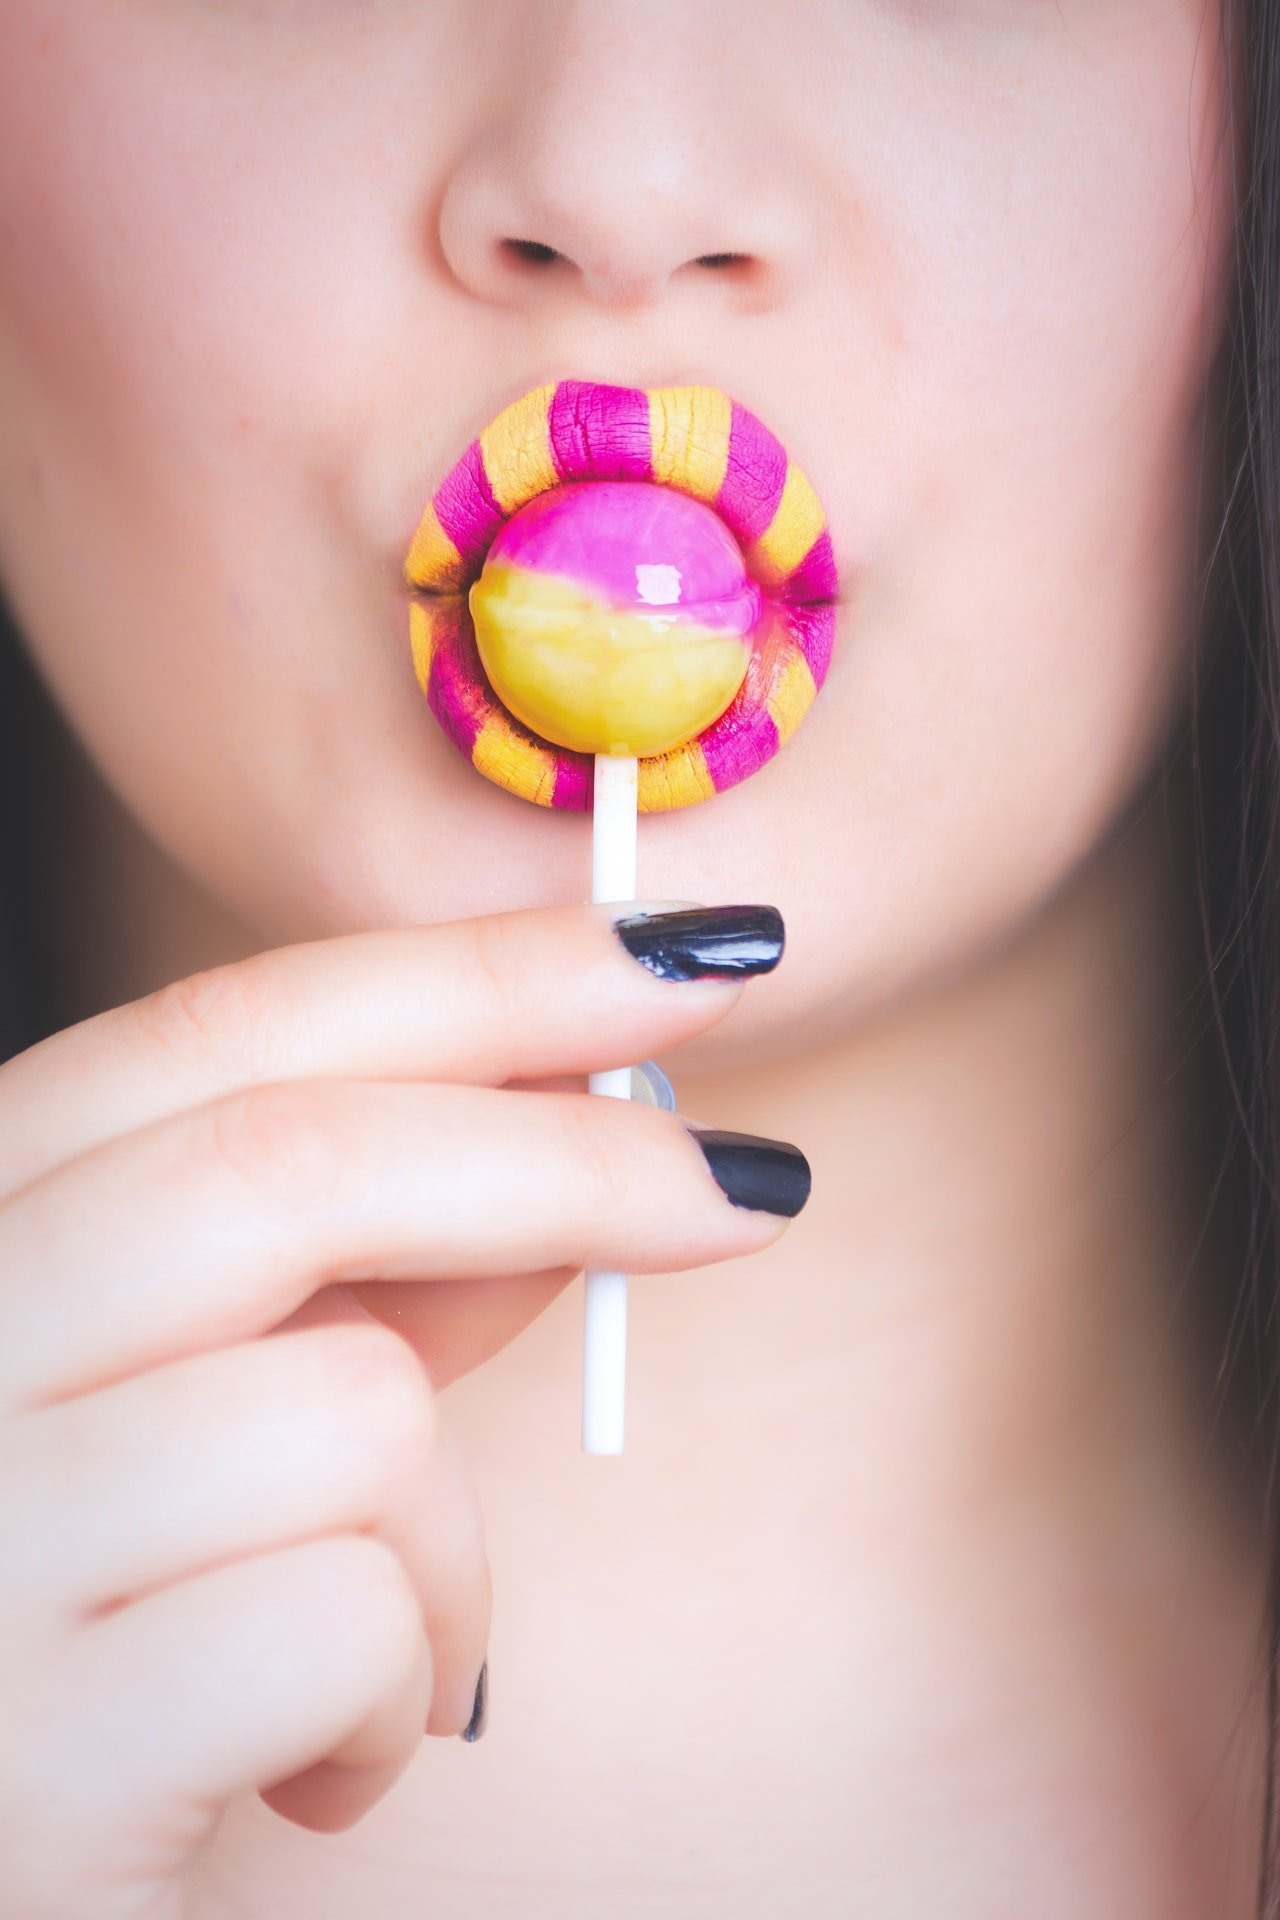 Photo of a woman licking lollipop | Photo: Pexels